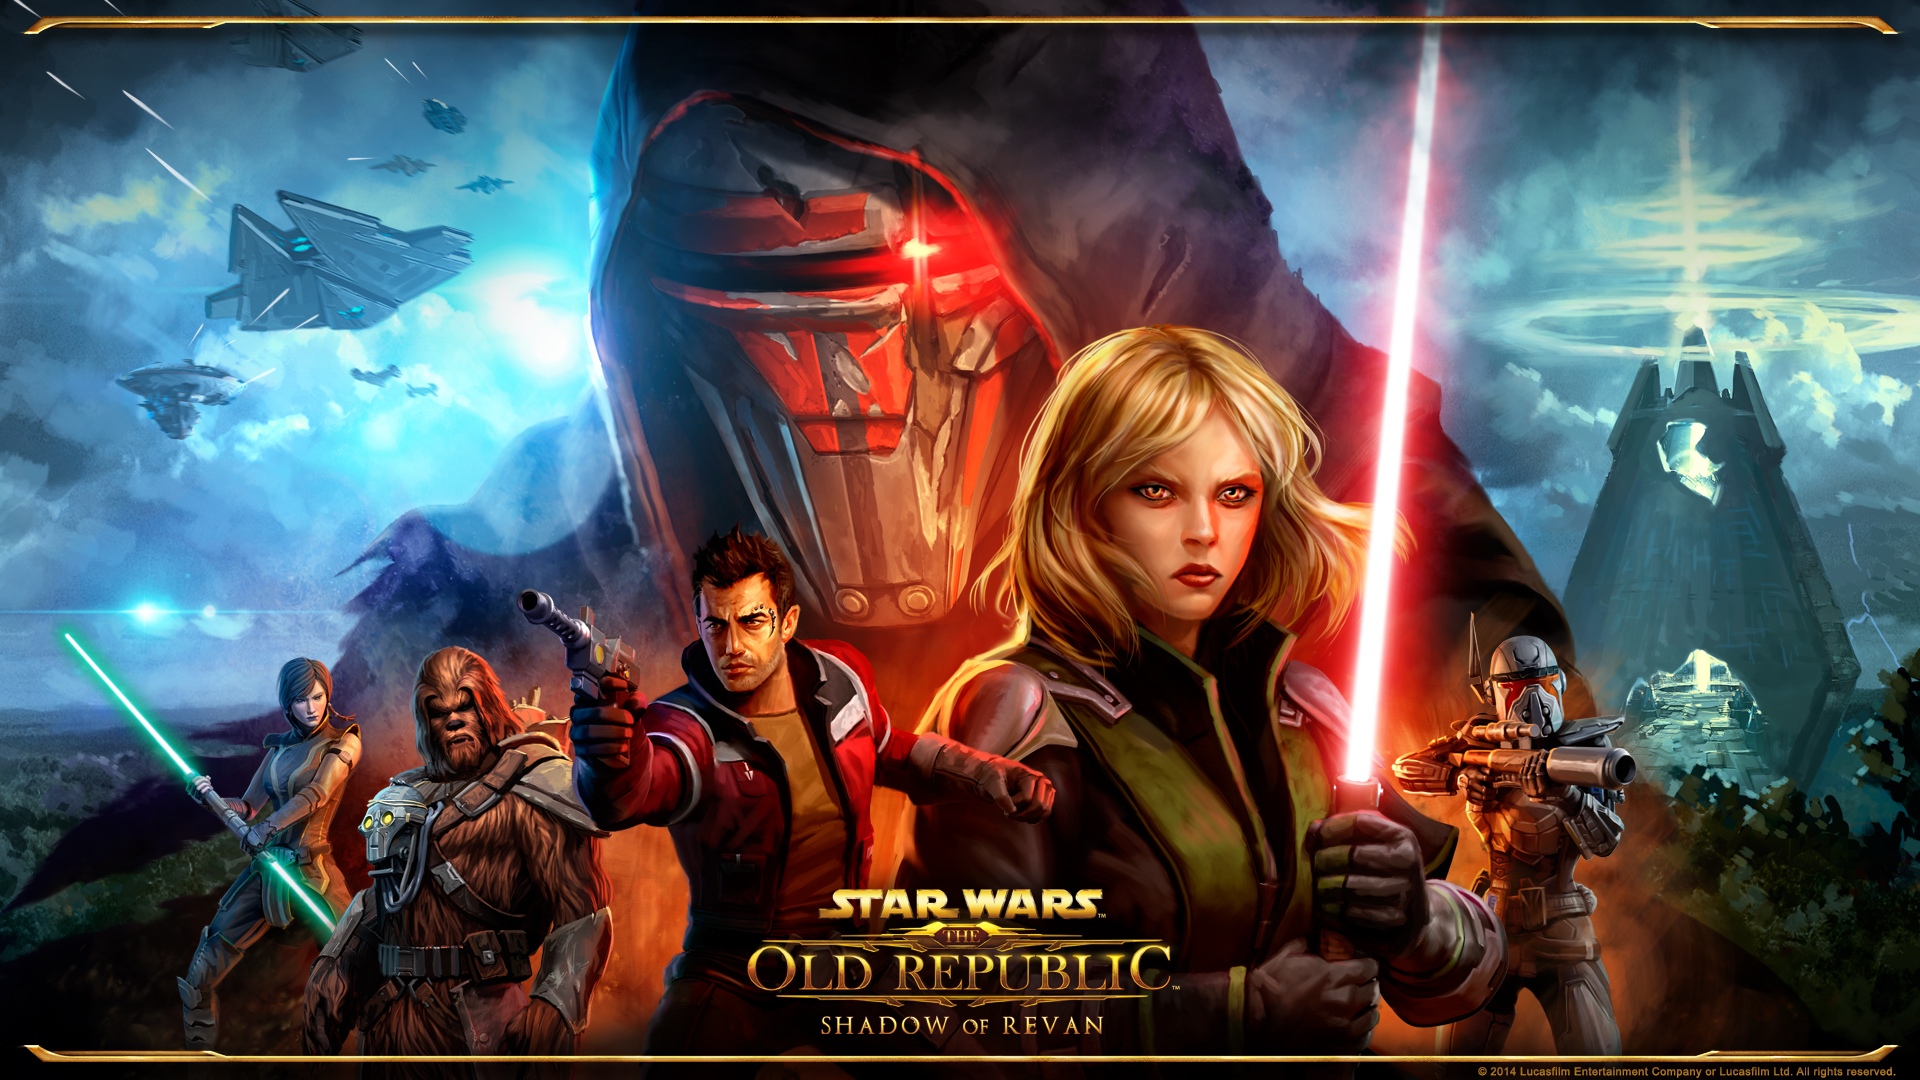 Expanze Shadow of Revan pro Star Wars: The Old Republic zdarma 151916